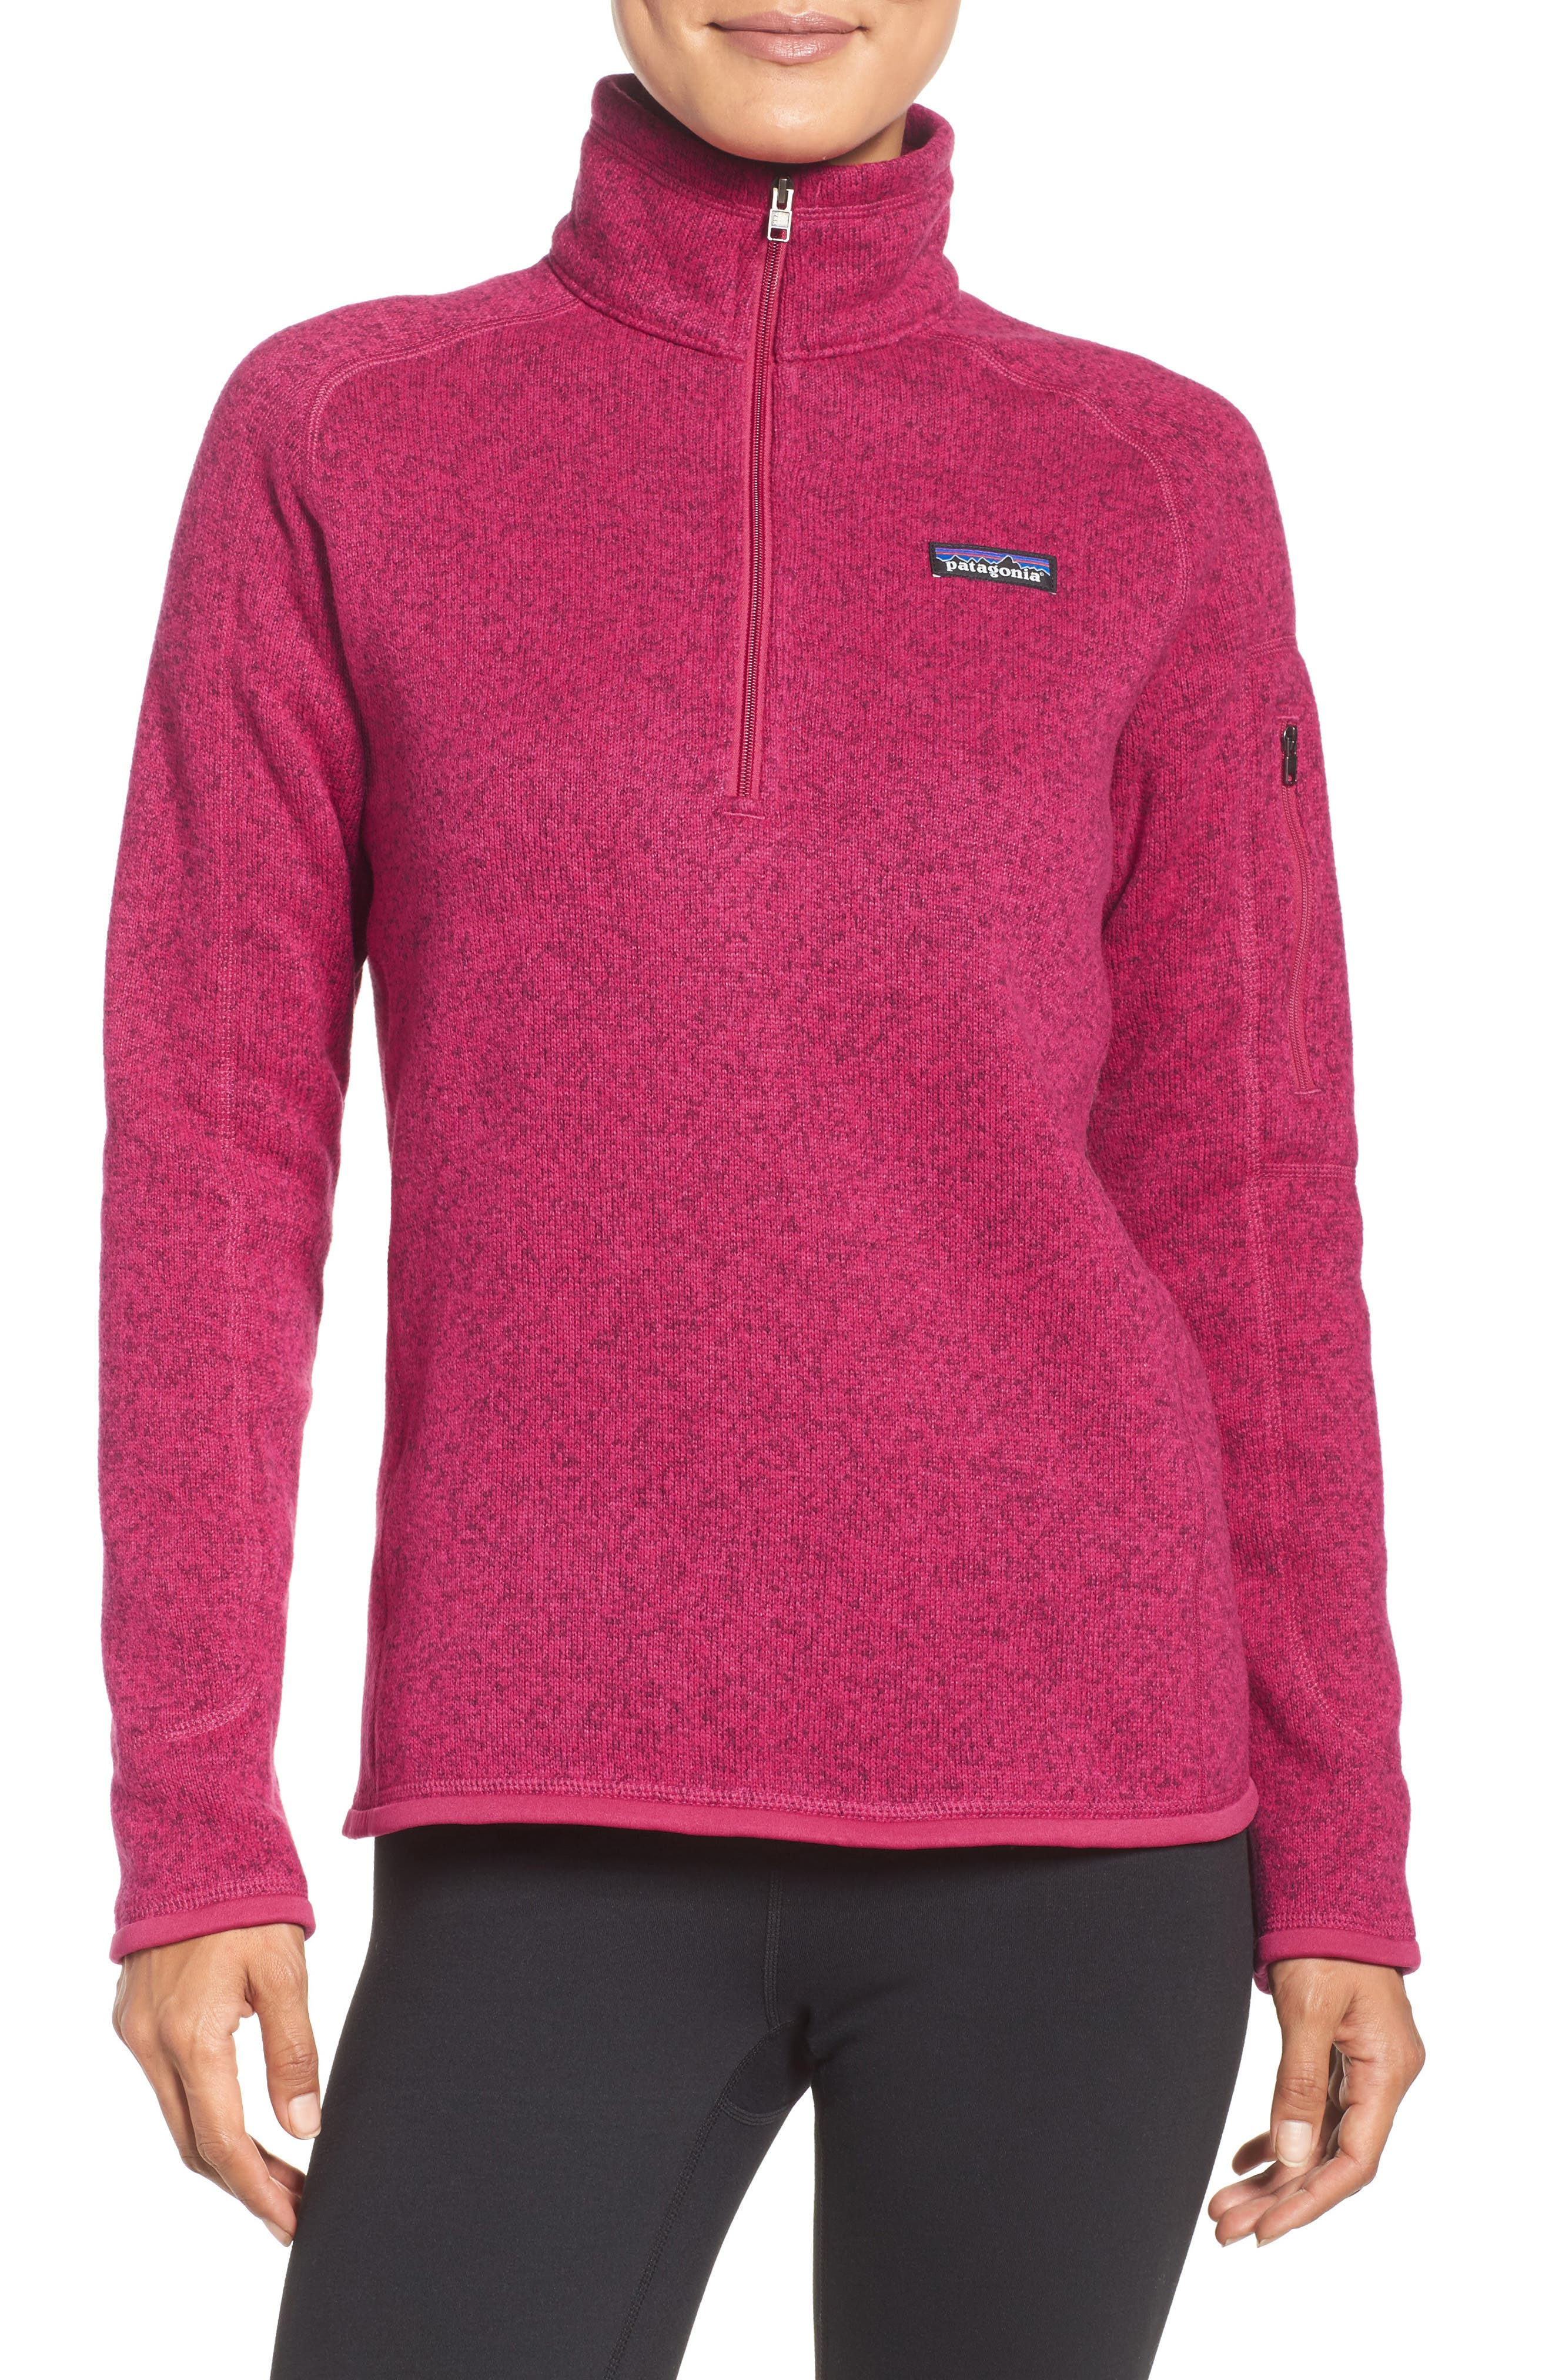 Alternate Image 1 Selected - Patagonia 'Better Sweater' Zip Pullover